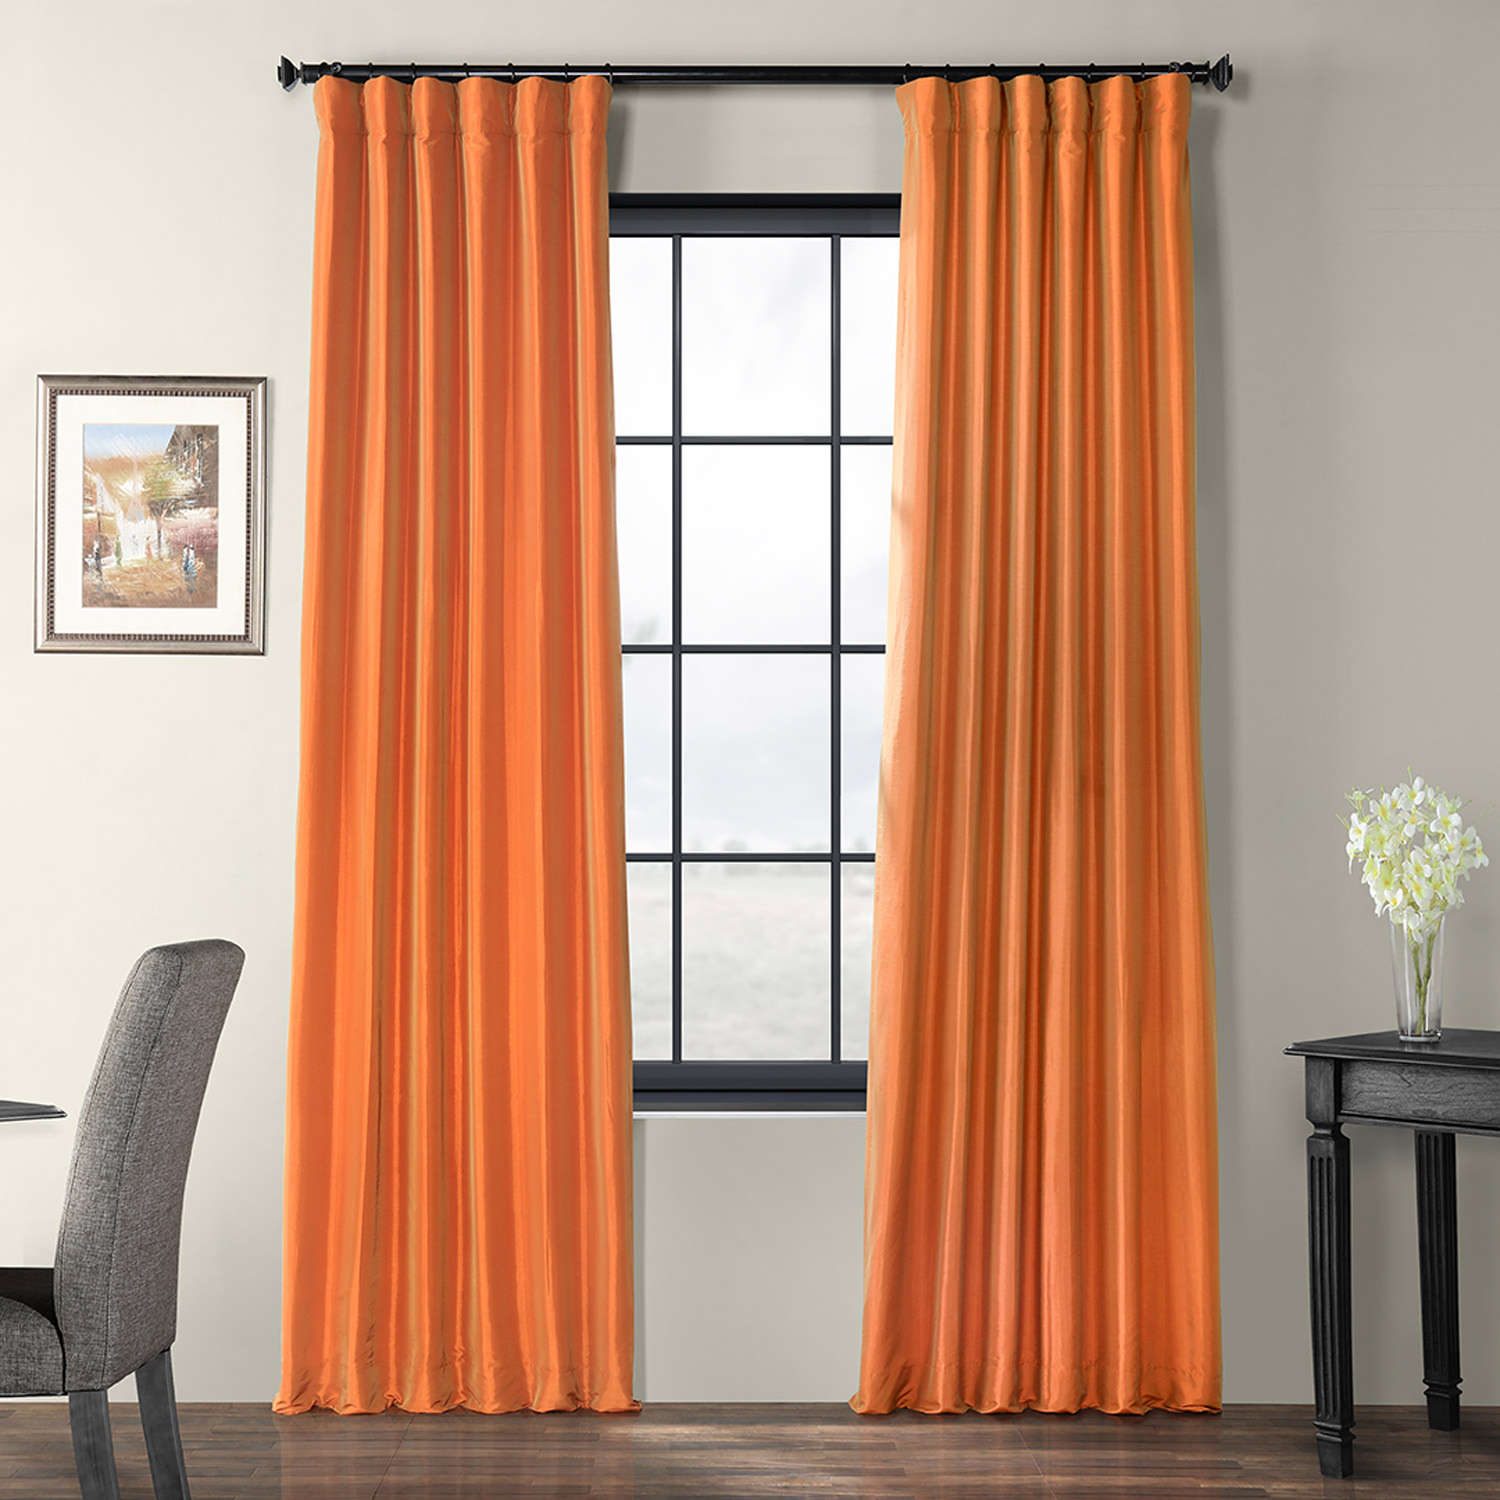 Silk Curtains And Drapes | Silk Curtain Shop With Solid Faux Silk Taffeta Graphite Single Curtain Panels (View 30 of 30)